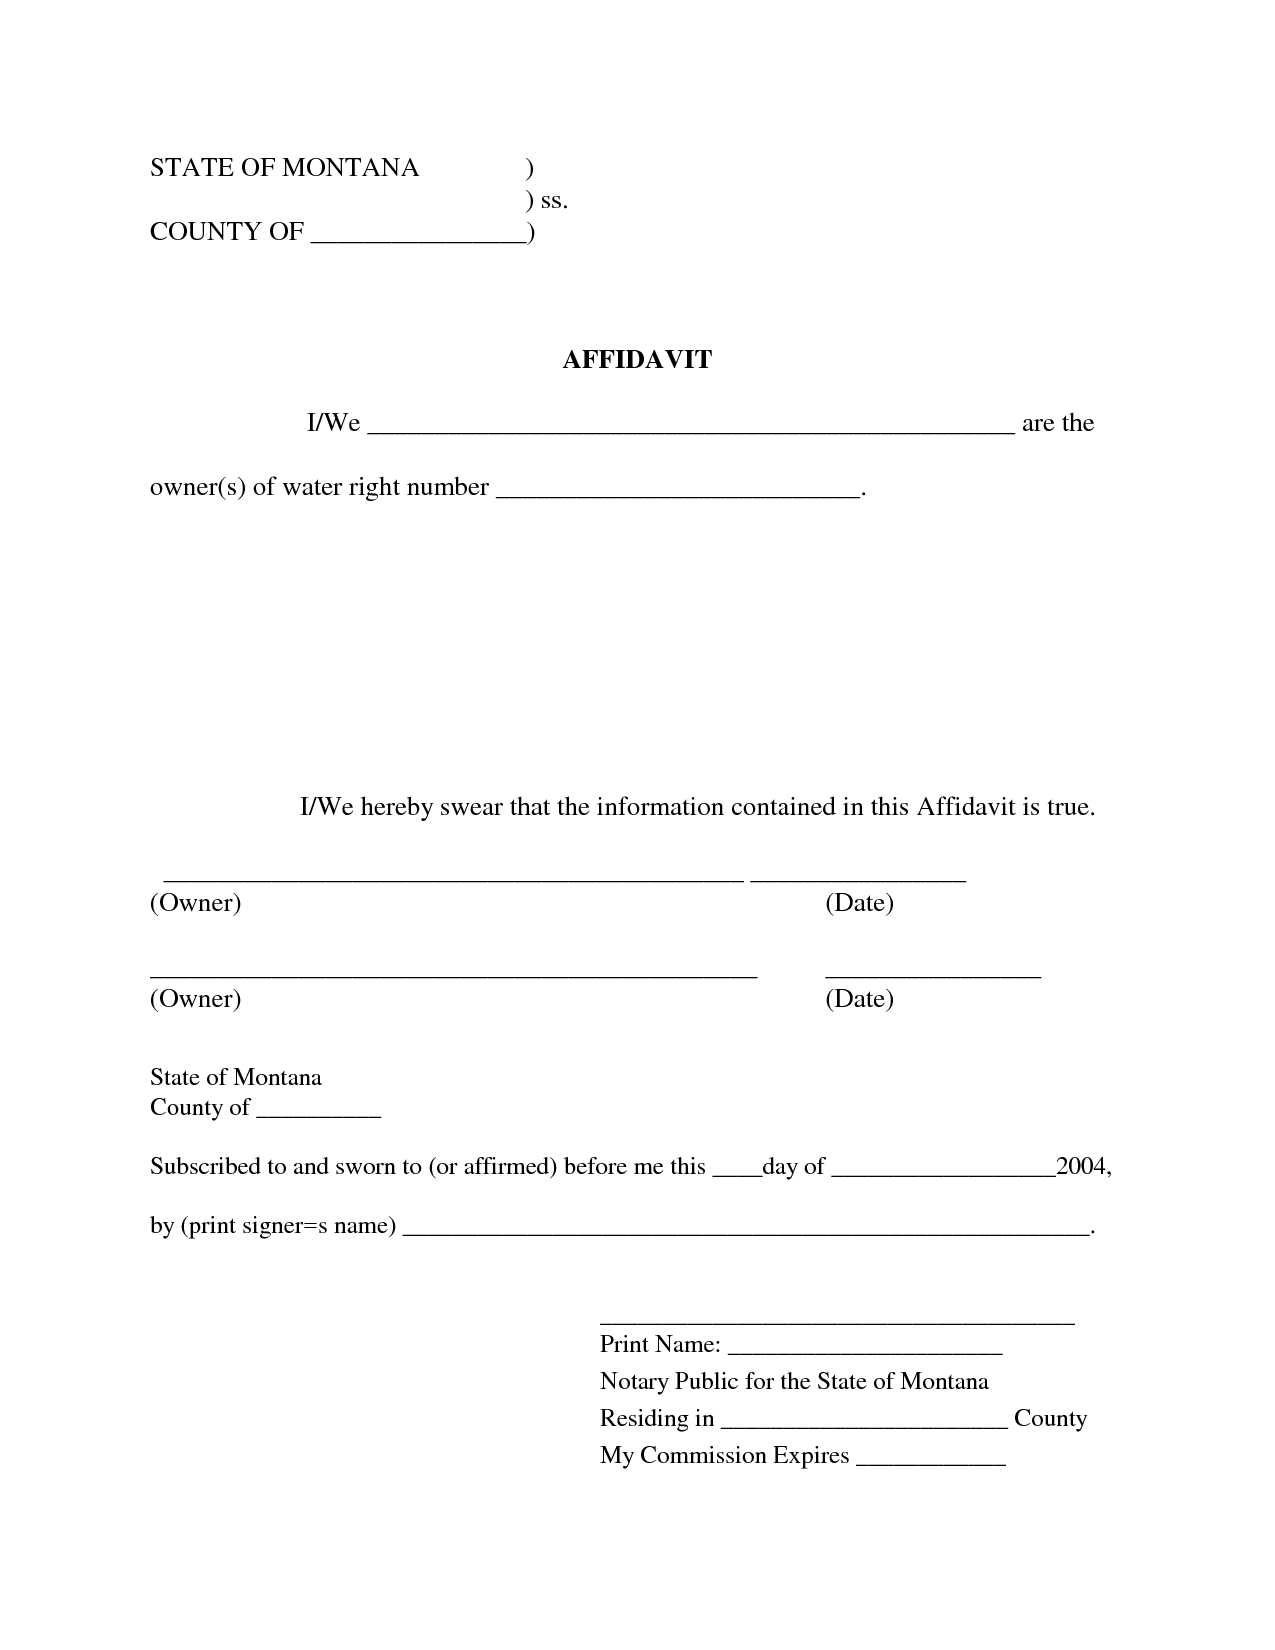 Lovely Free Blank Affidavit Form | Blank Sworn Affidavit Forms On Blank Affidavit